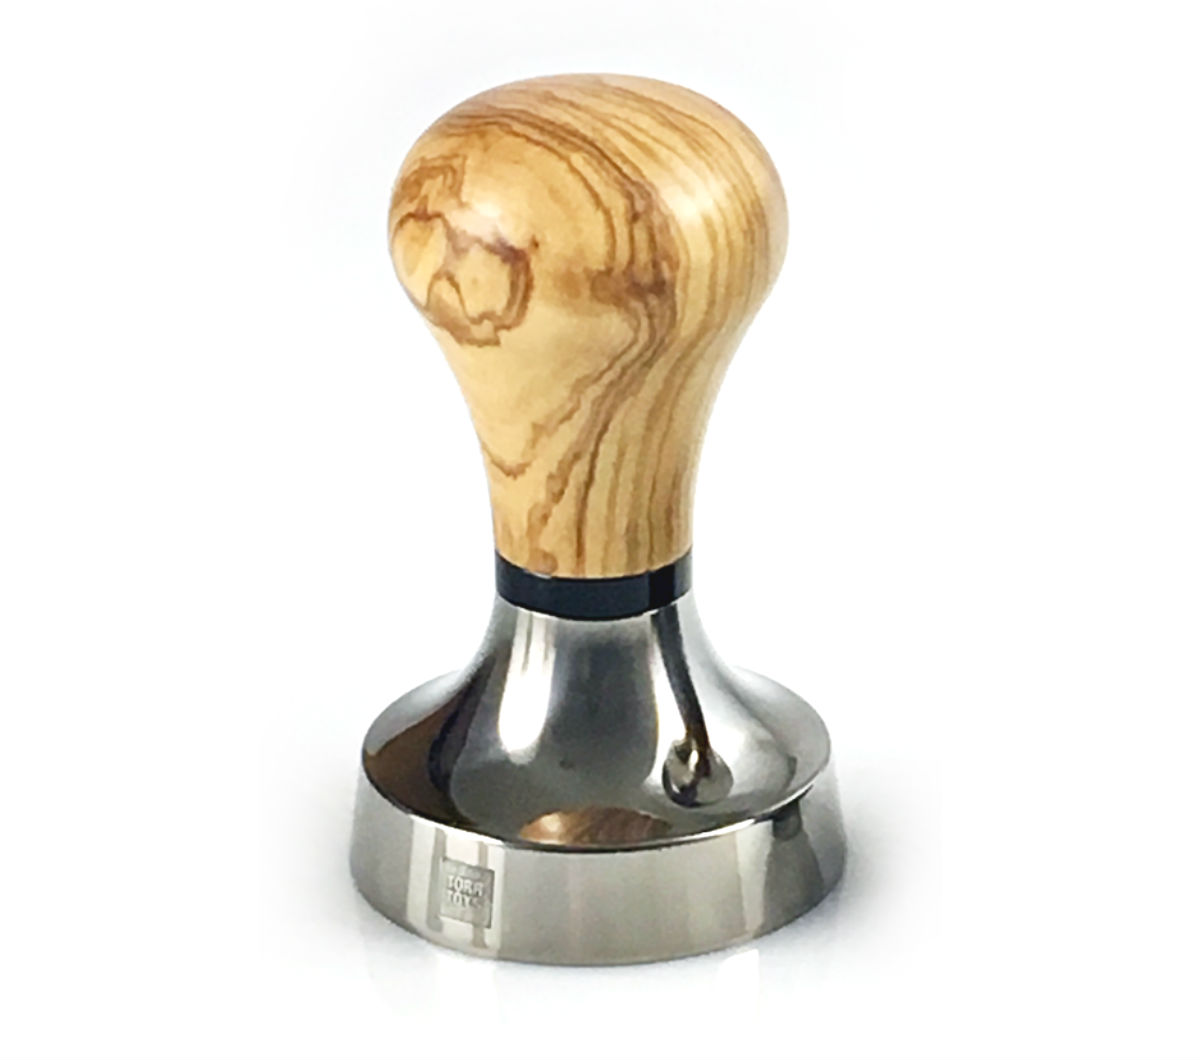 """GOLDFINGER"" 58.55mm TI Sharp Edge - Olive Wood"